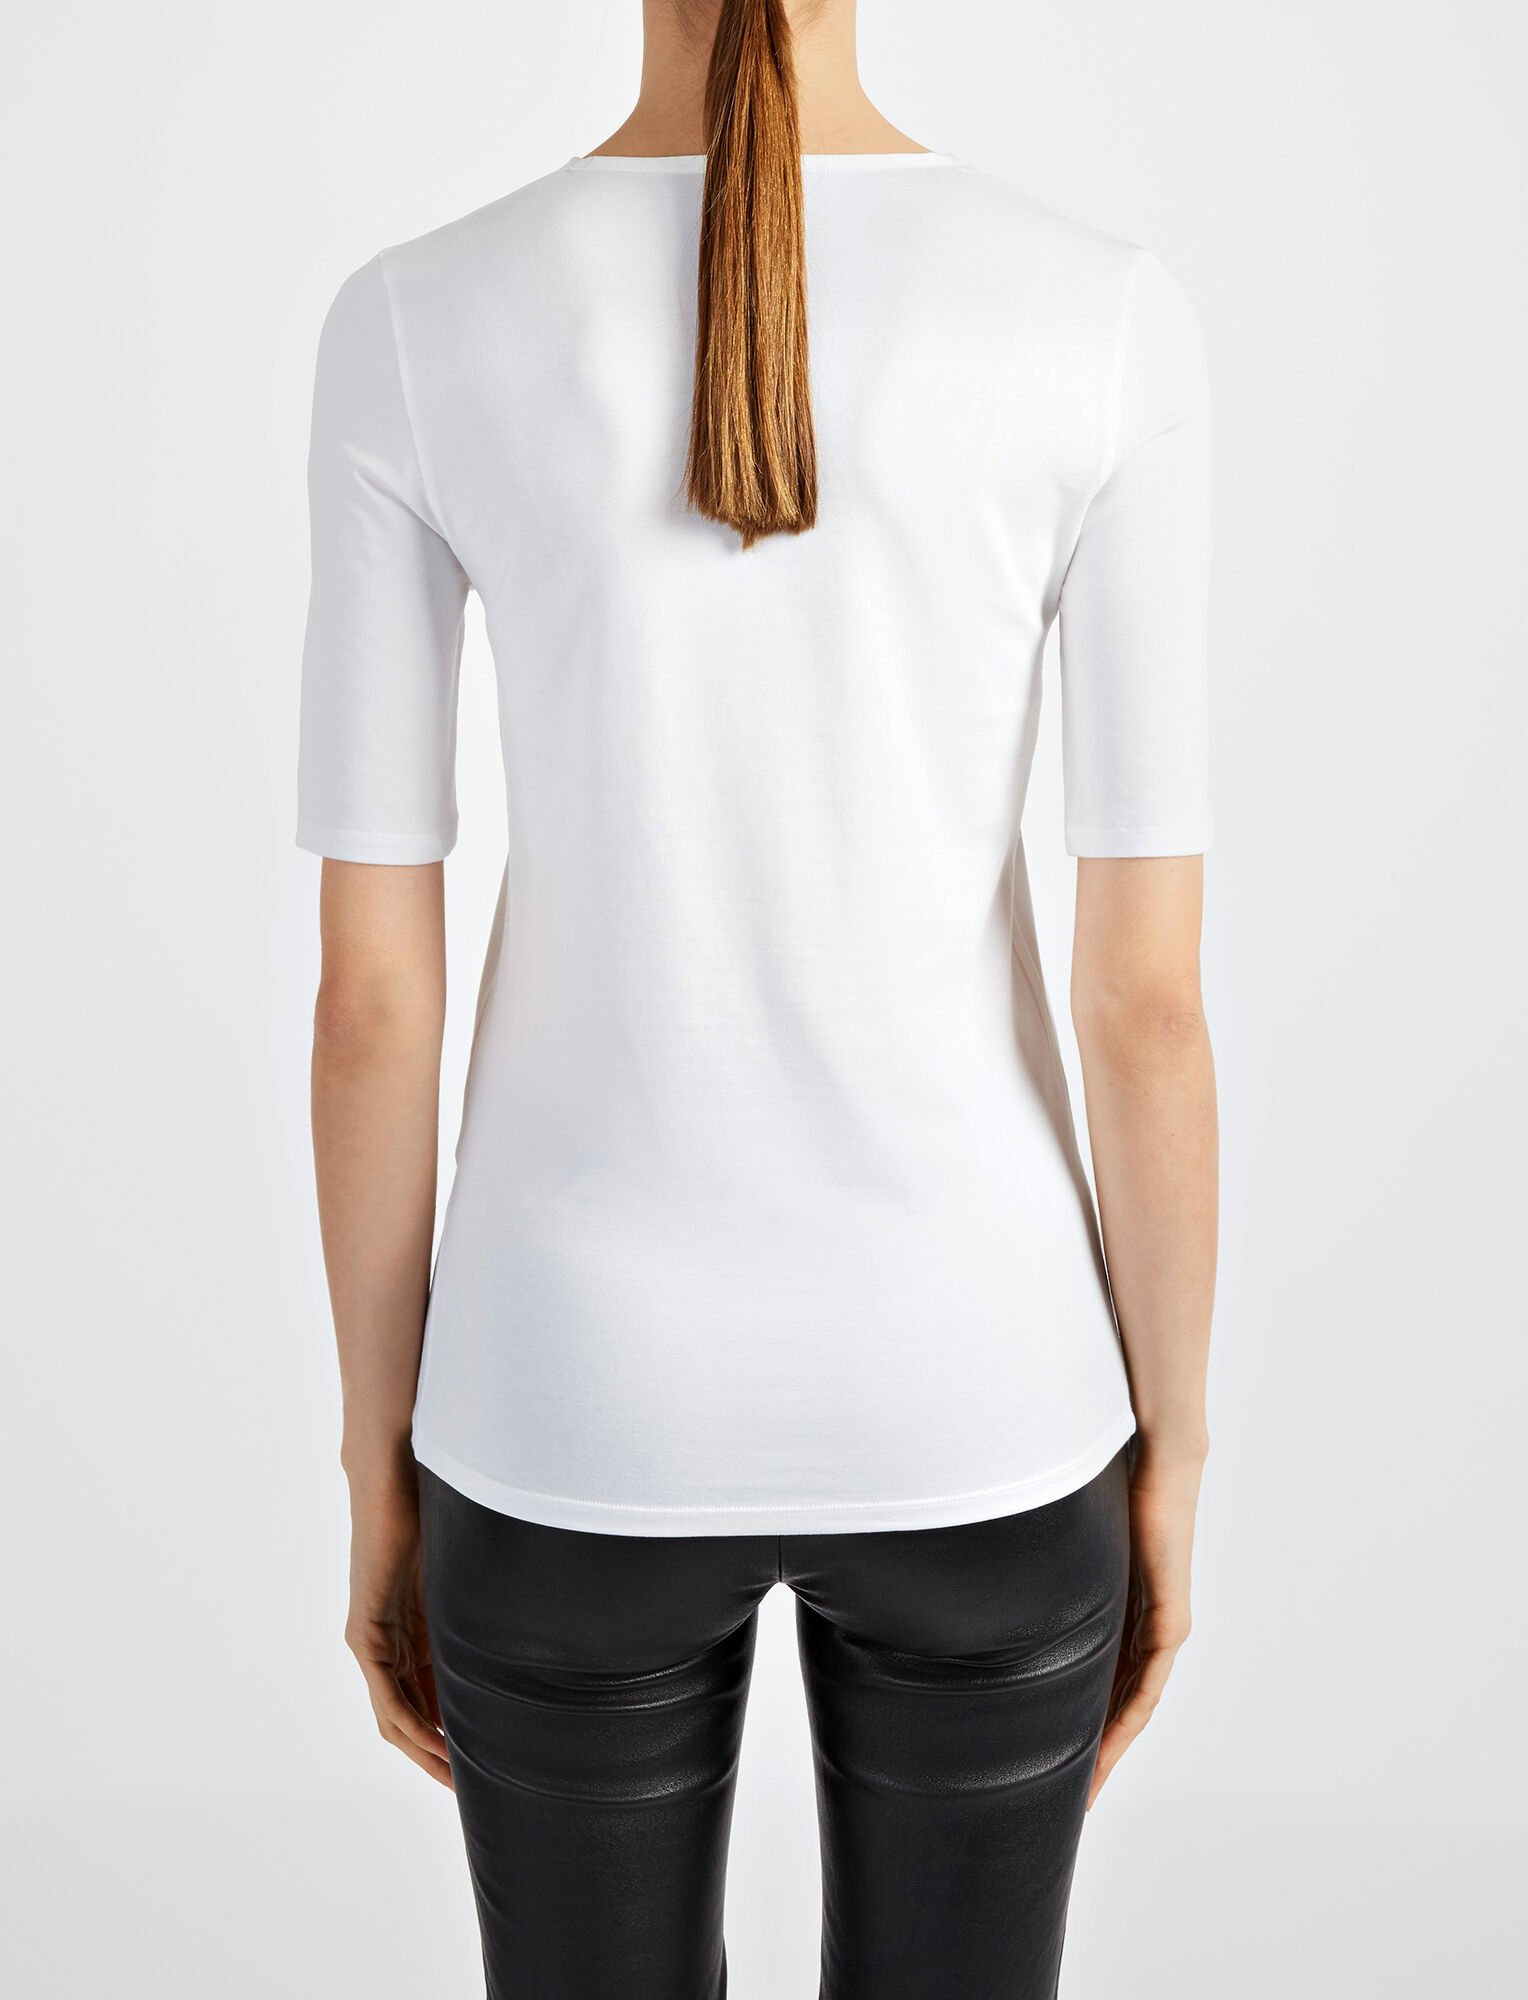 Joseph, Cotton Lyocell Stretch Top, in OFF WHITE